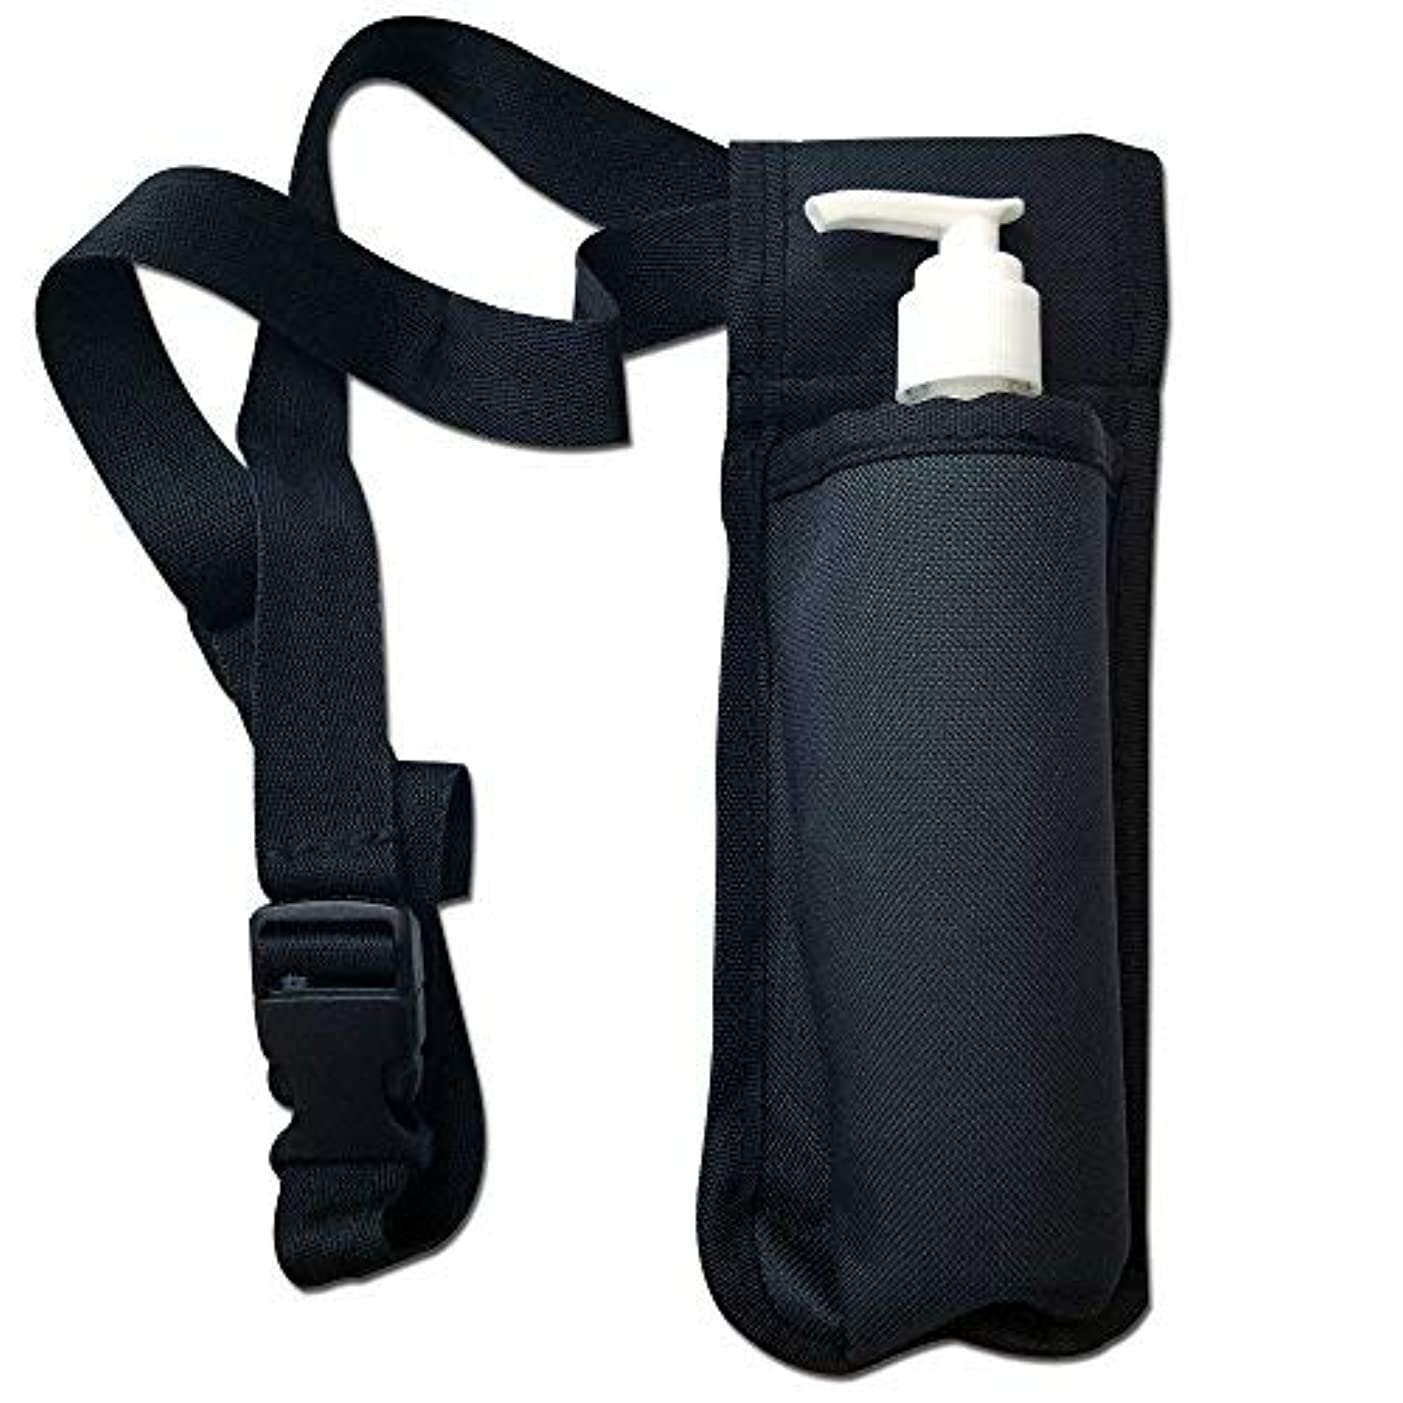 負荷グレー予防接種TOA Single Bottle Holster Adjustable Strap w/ 6oz Bottle for Massage Oil, Lotion, Cream [並行輸入品]